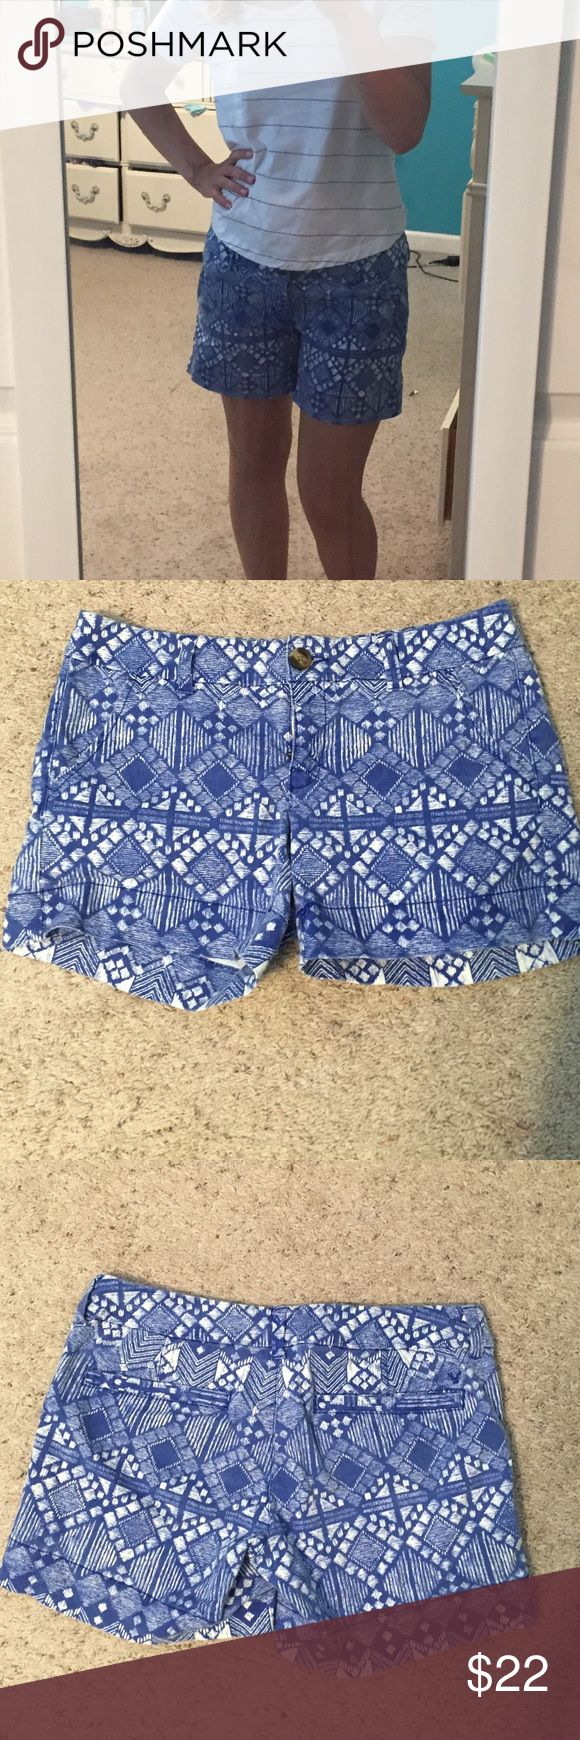 🎉SALE🎉| American eagle | Blue Aztec print shorts Bought this in the wrong size and washed hoping they would shrink a little. Never worn blue and white midi shorts. Price is firm American Eagle Outfitters Shorts